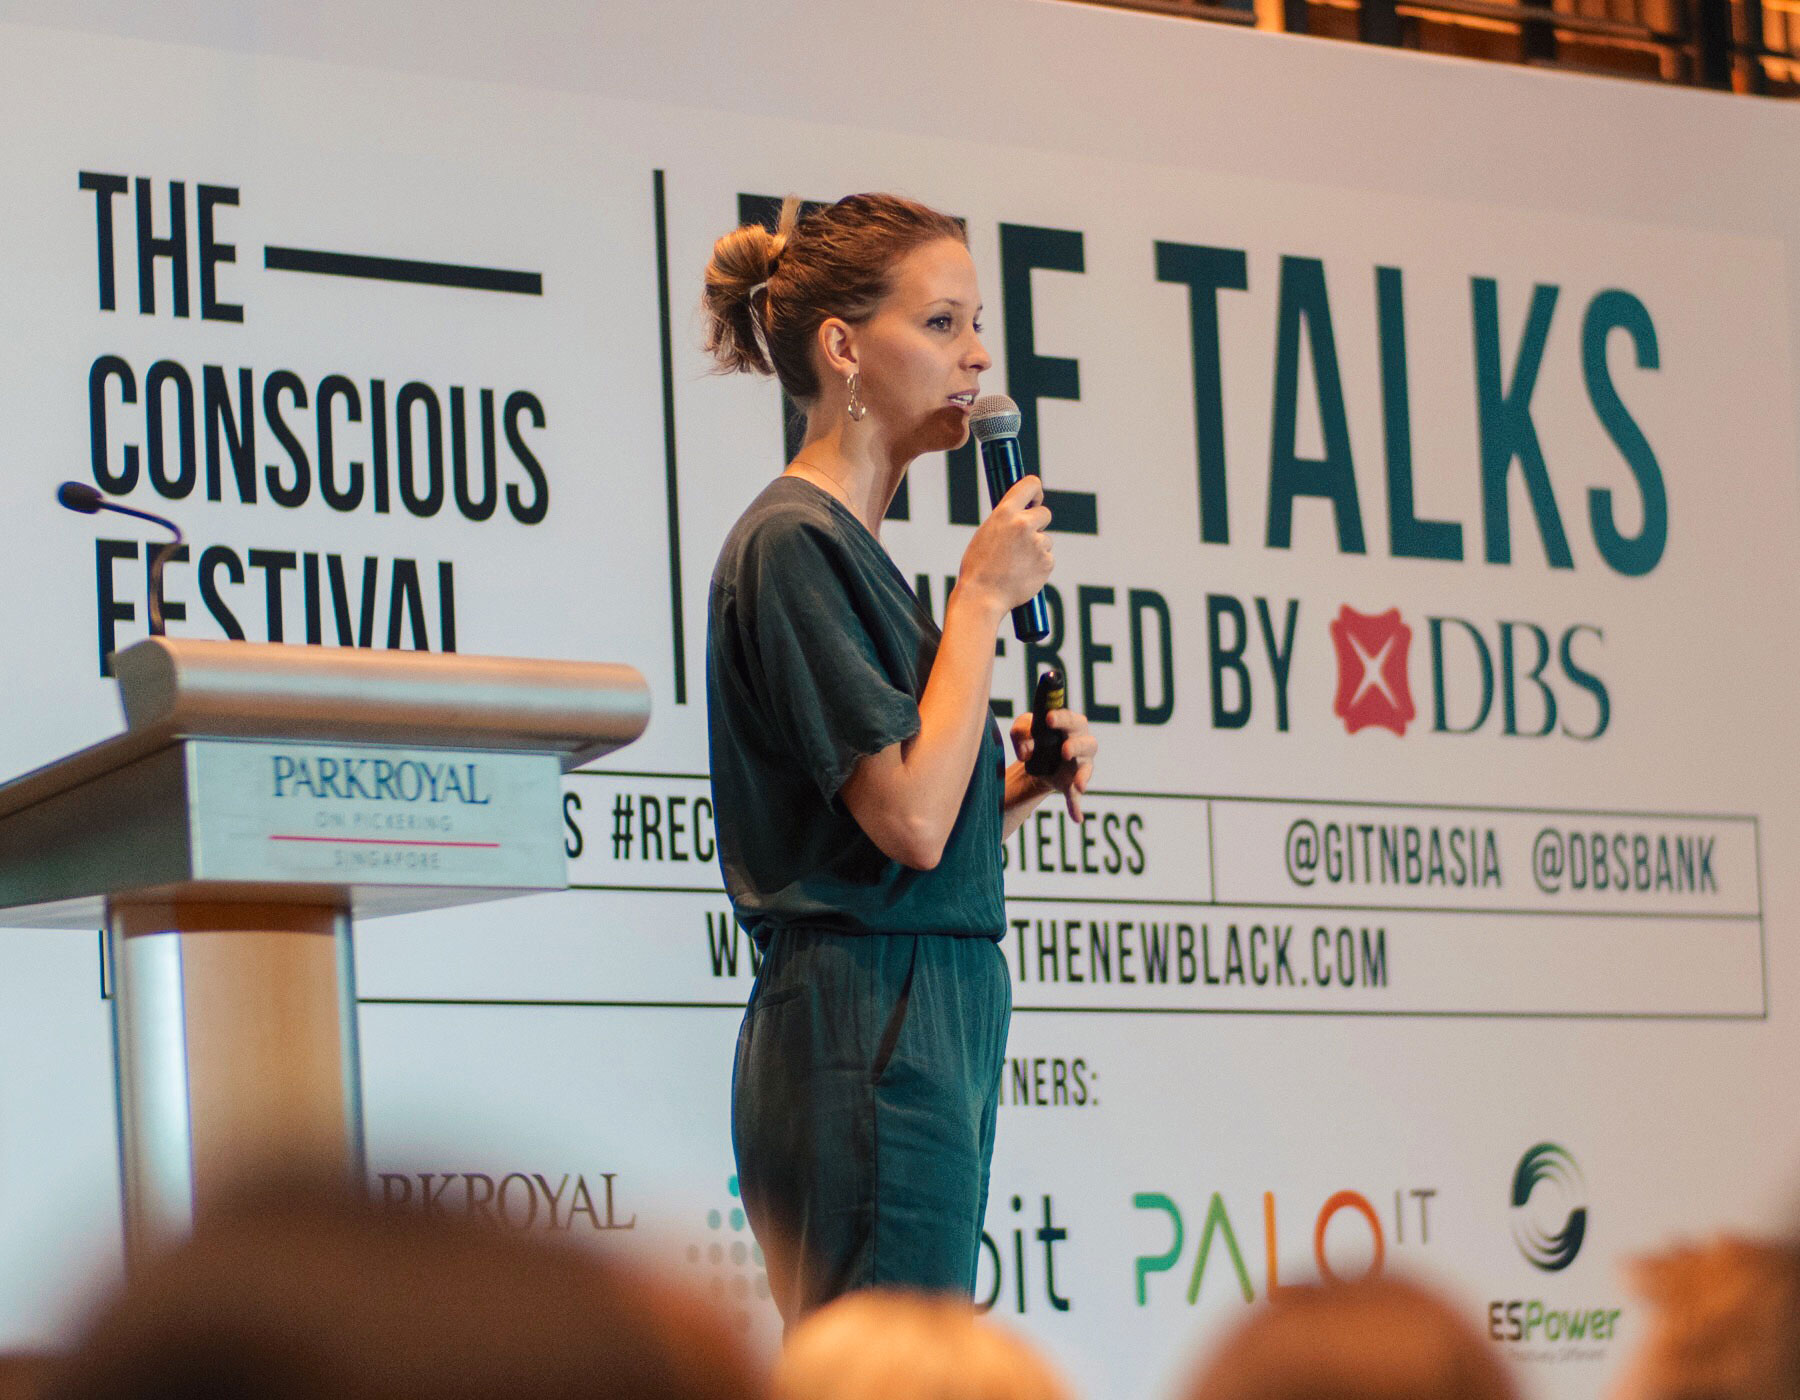 Talk about Zero Waste and sustainability at The Conscious Festival - Singapore - April 2018